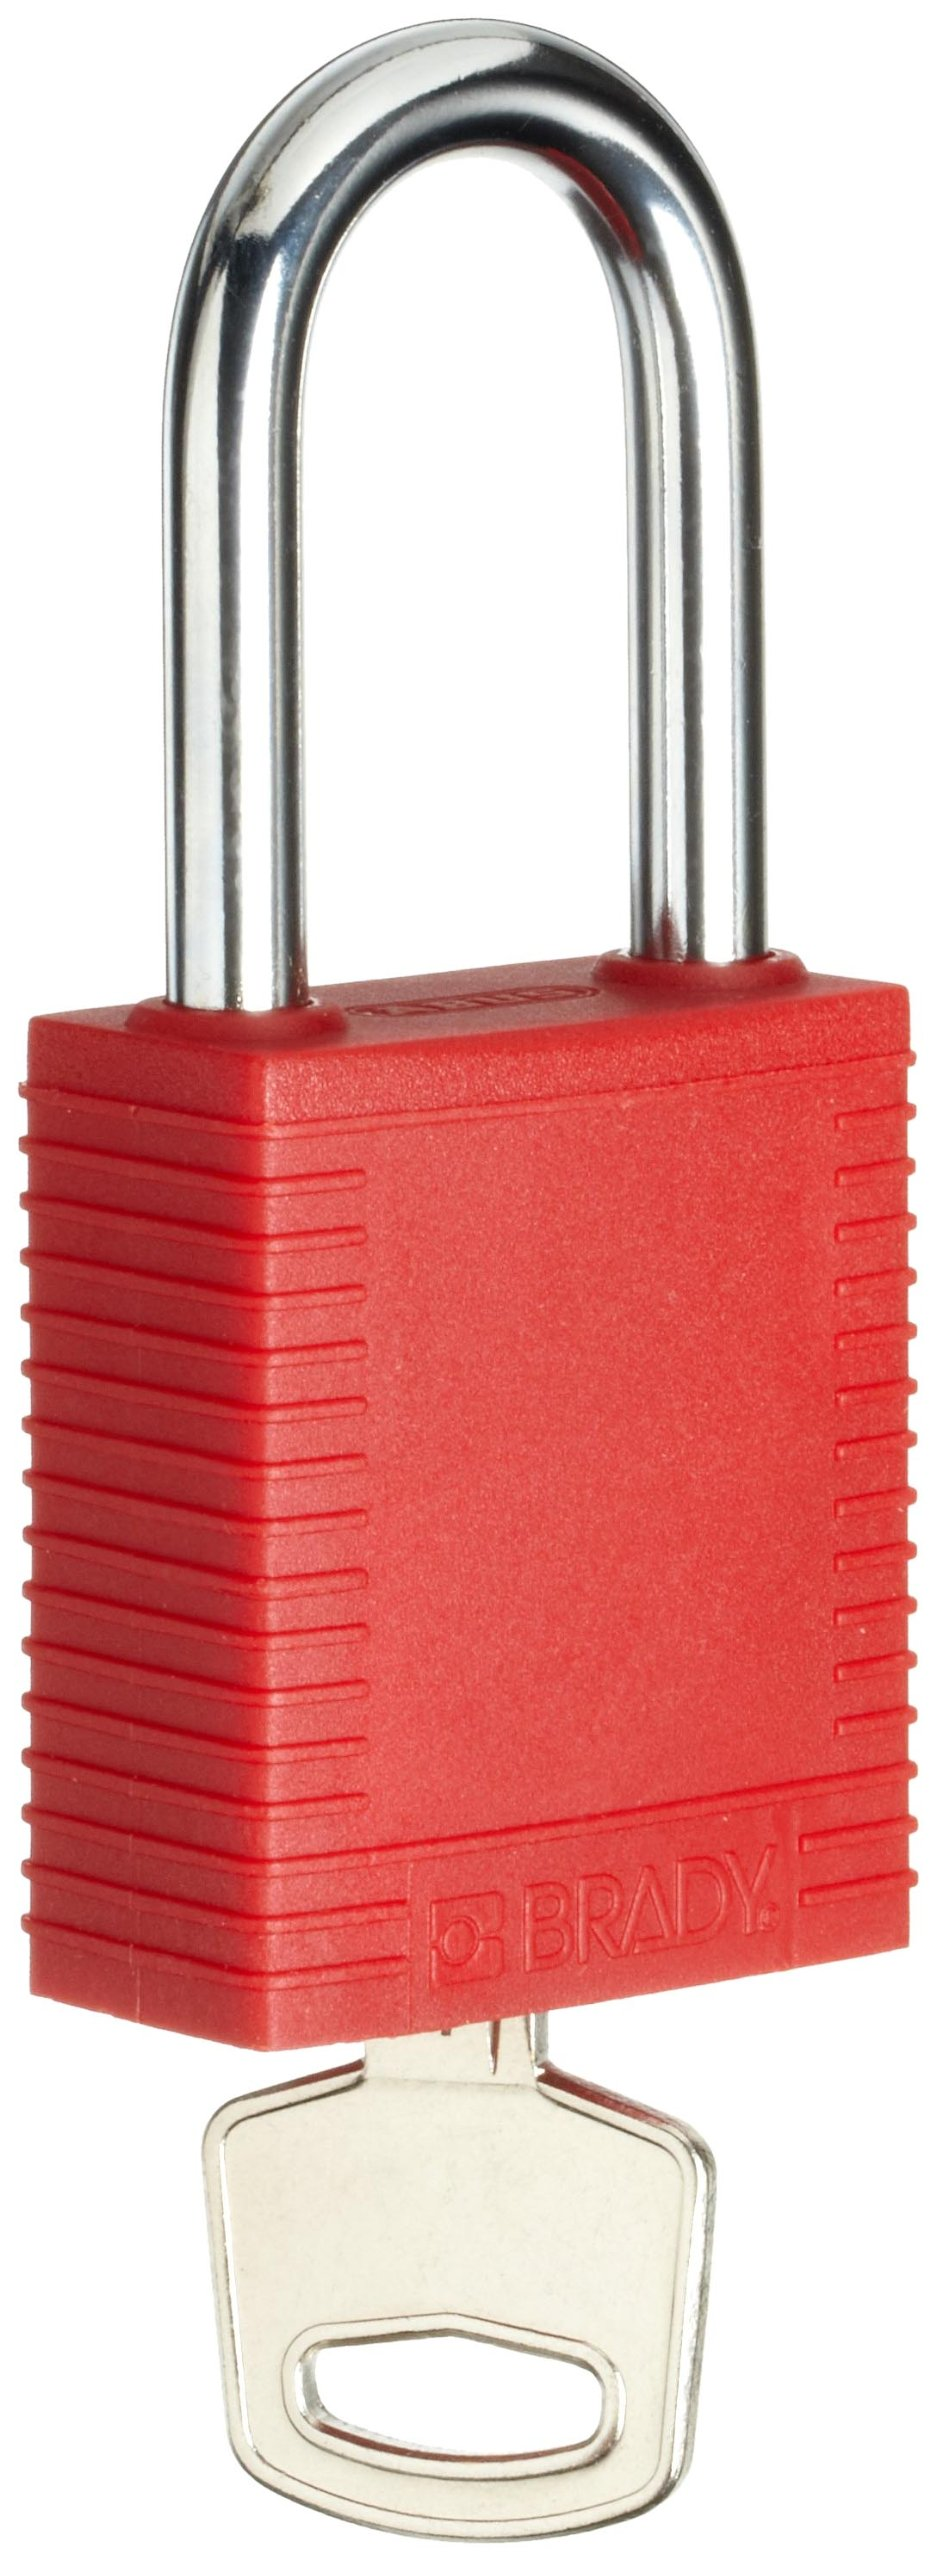 Brady Plastic Lockout/Tagout Padlock, Keyed Different, 1-3/4'' Body Length, 1-1/2'' Shackle Clearance, Red (Pack of 1)